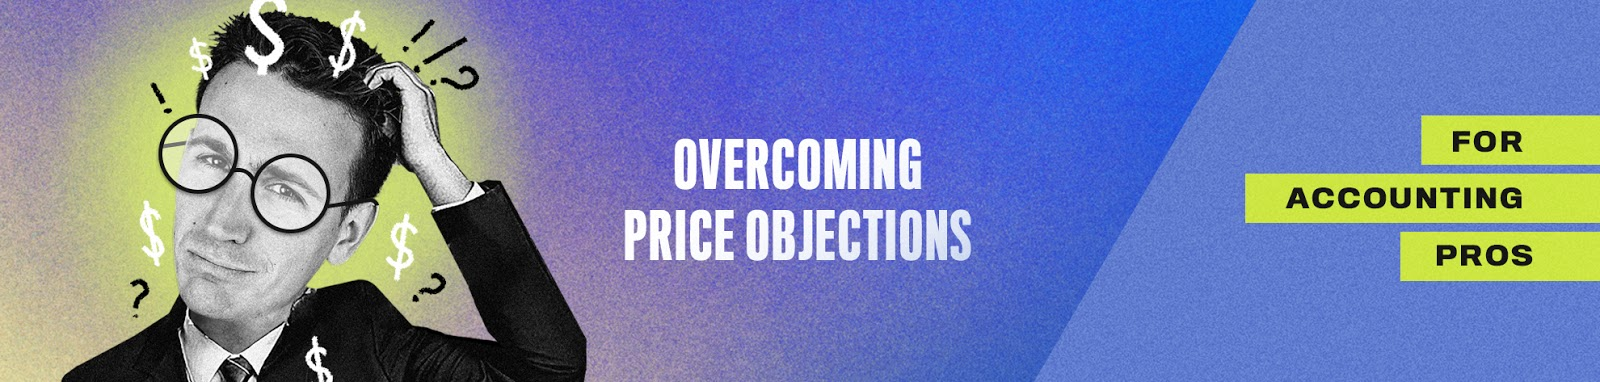 Overcoming Price Objections For Accounting Pros